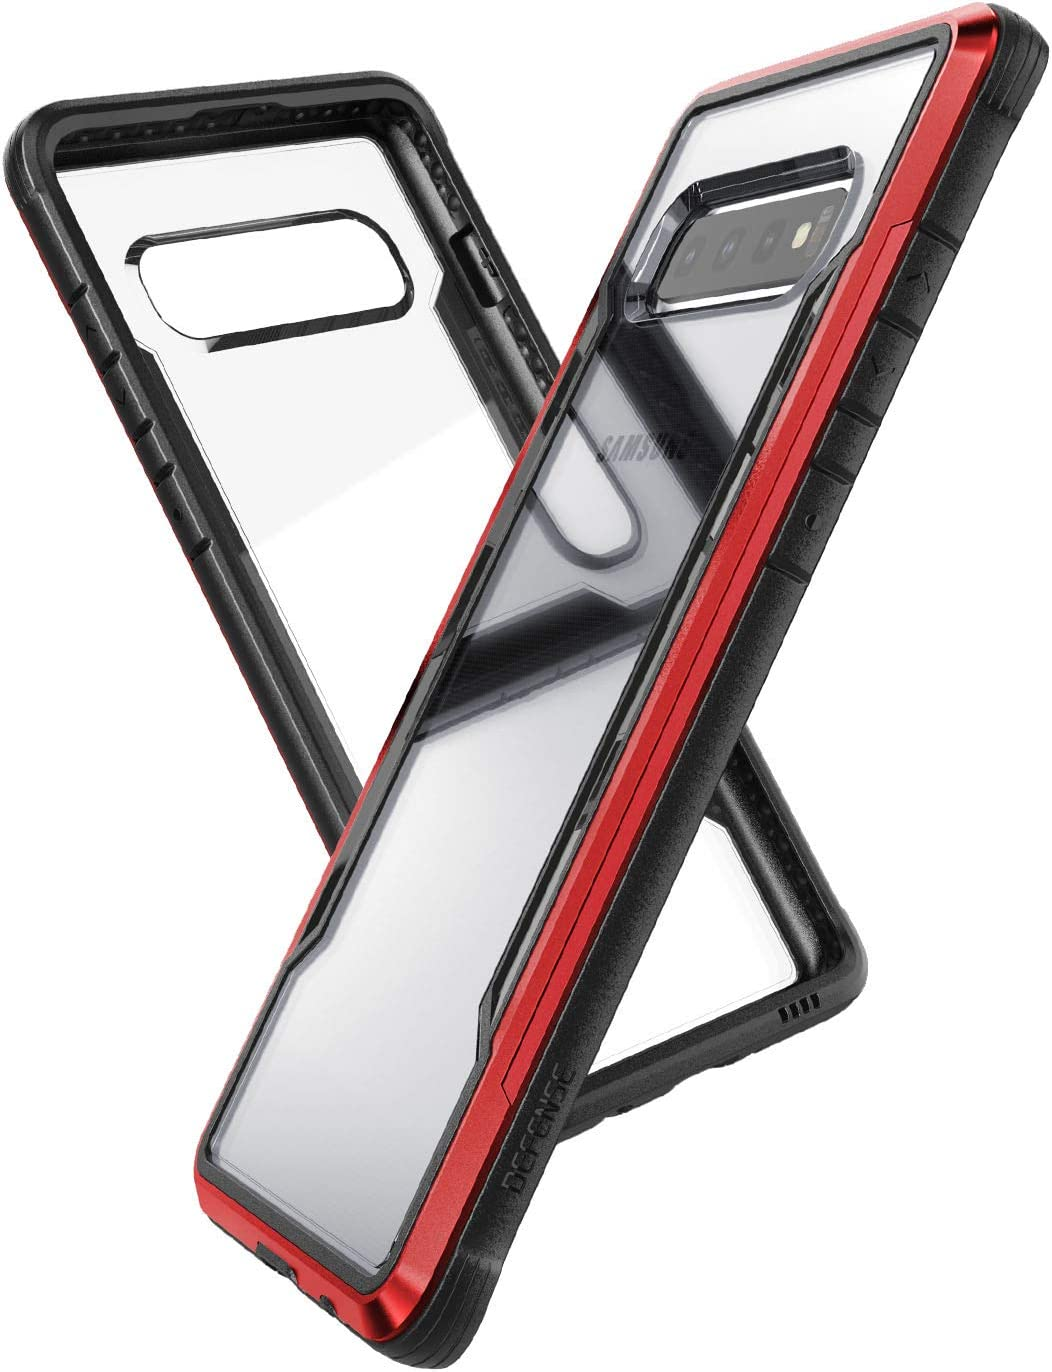 X-Doria Defense Shield, Samsung Galaxy S10 Phone Case - Military Grade Drop Tested, Anodized Aluminum, TPU, and Polycarbonate Protective Case for Samsung Galaxy S10 (Red)